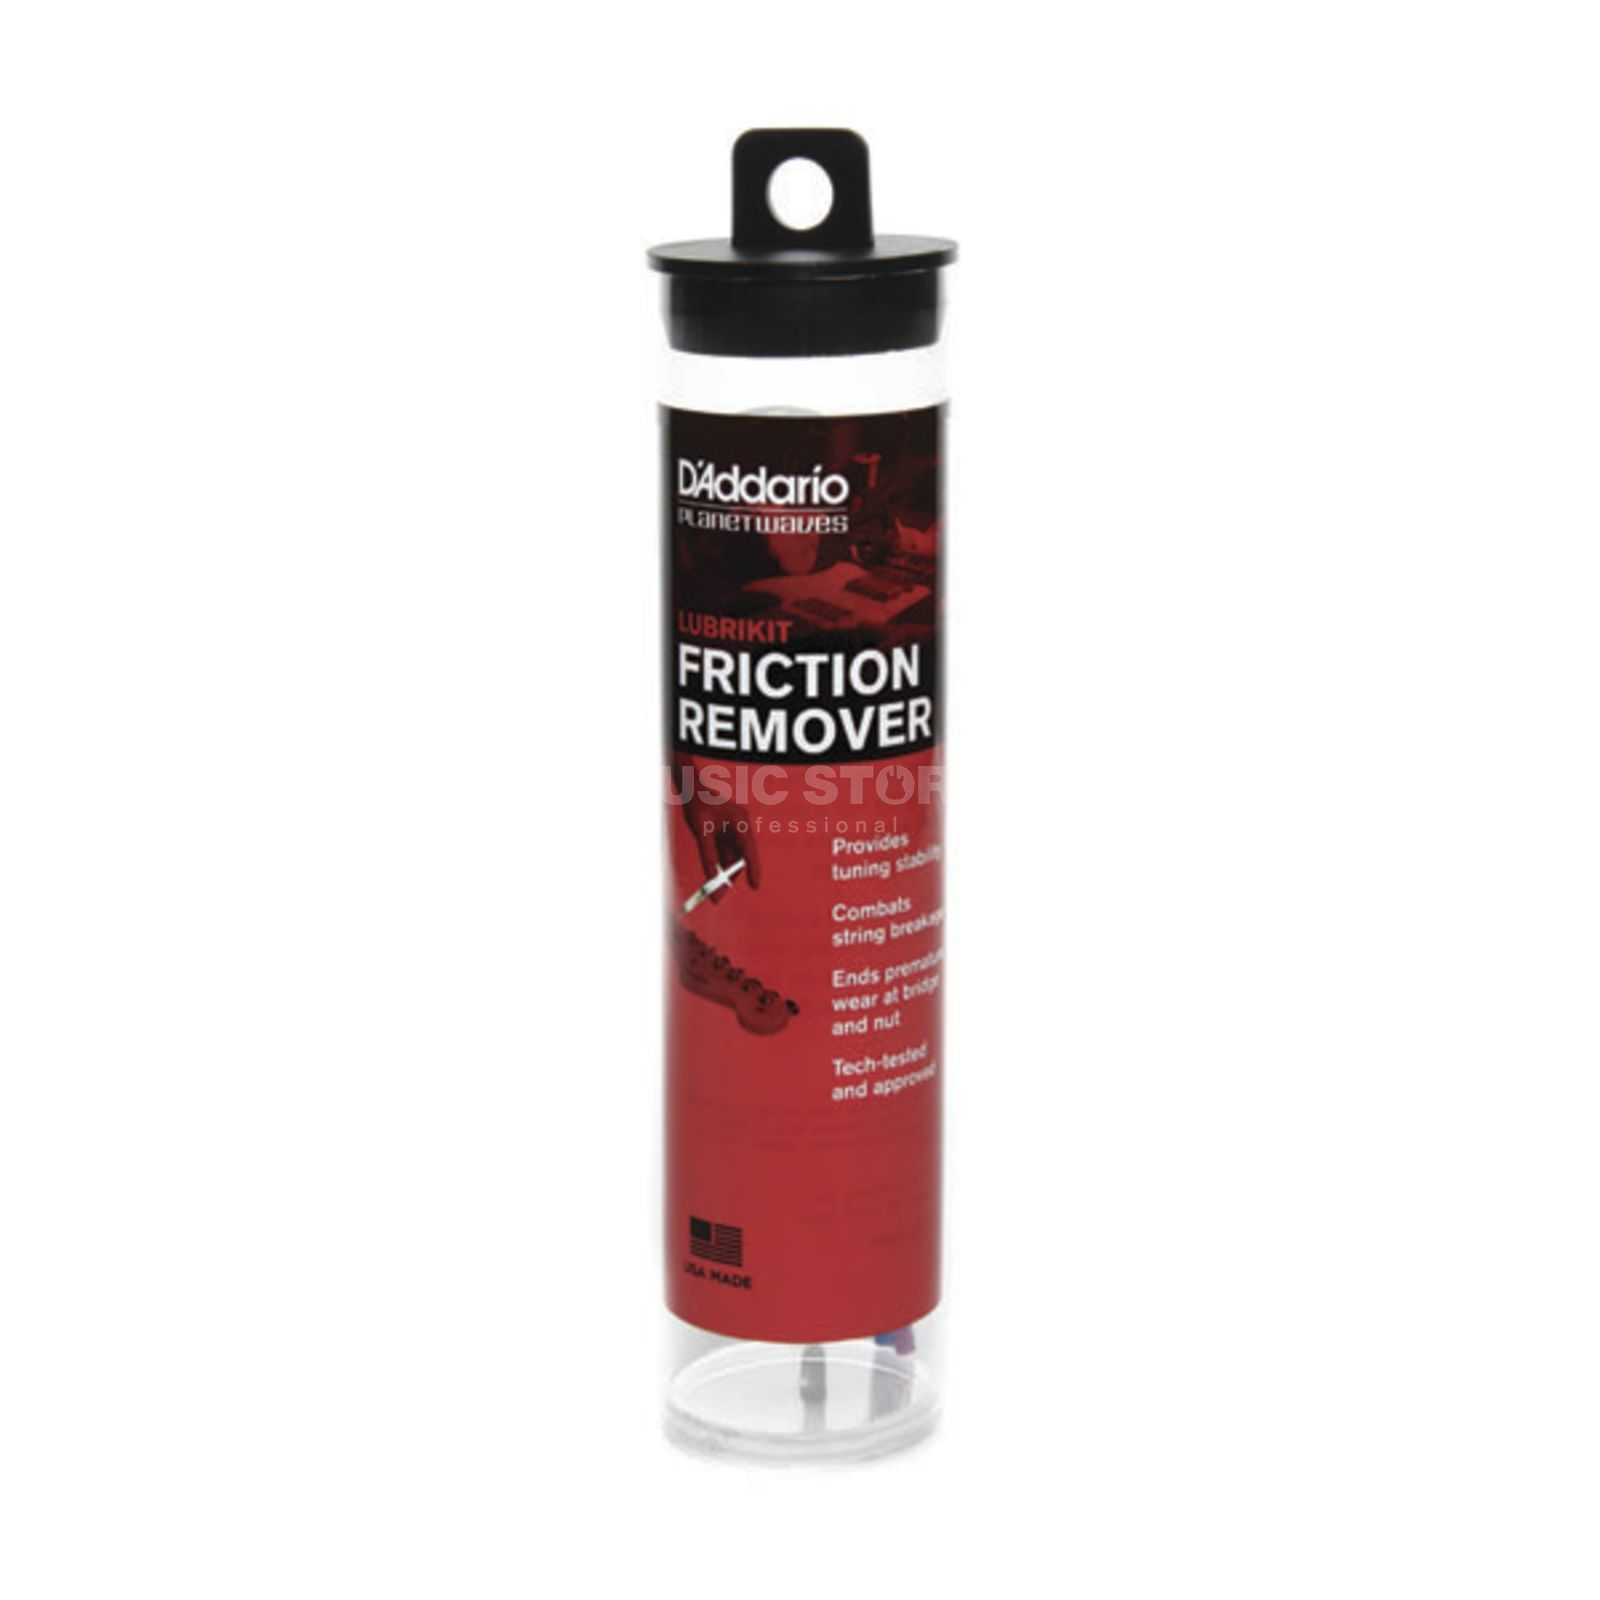 D'Addario Planet Waves Lubrikit Friction Remover    Product Image